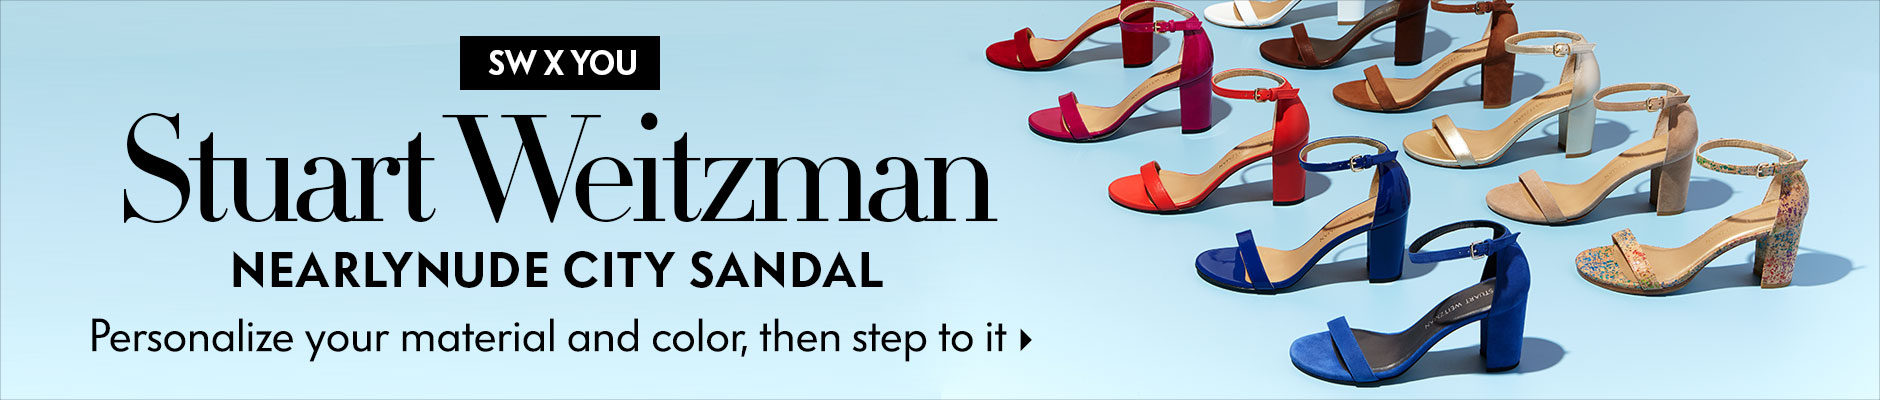 Stuart Weitzman - Nearlynude City Sandal - Personalize your material and color, then step to it